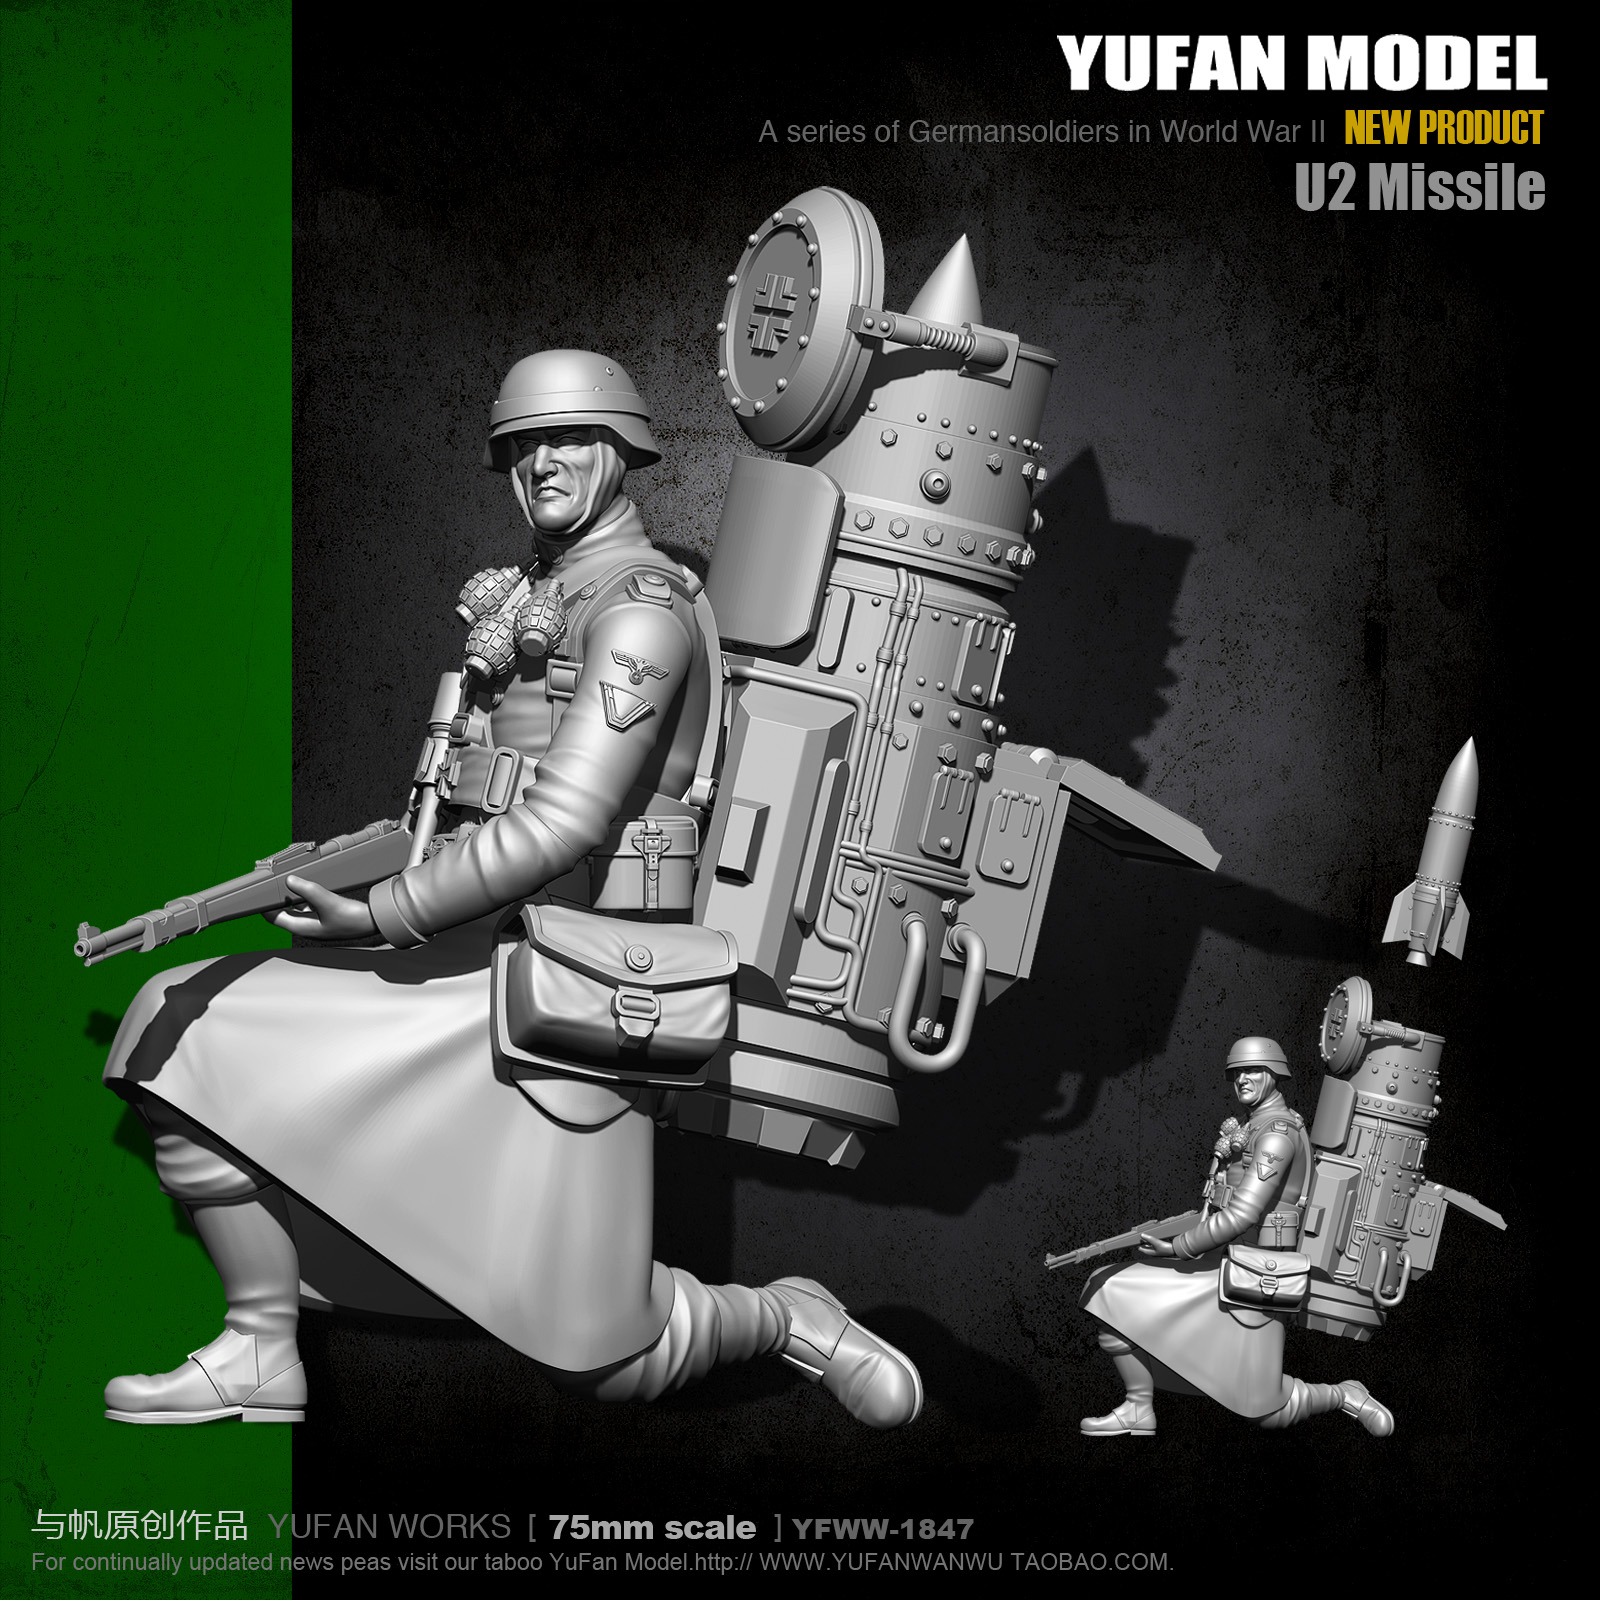 YUFAN Model 75mm Rocket Resin Soldier Self-assembled YFWW-1847